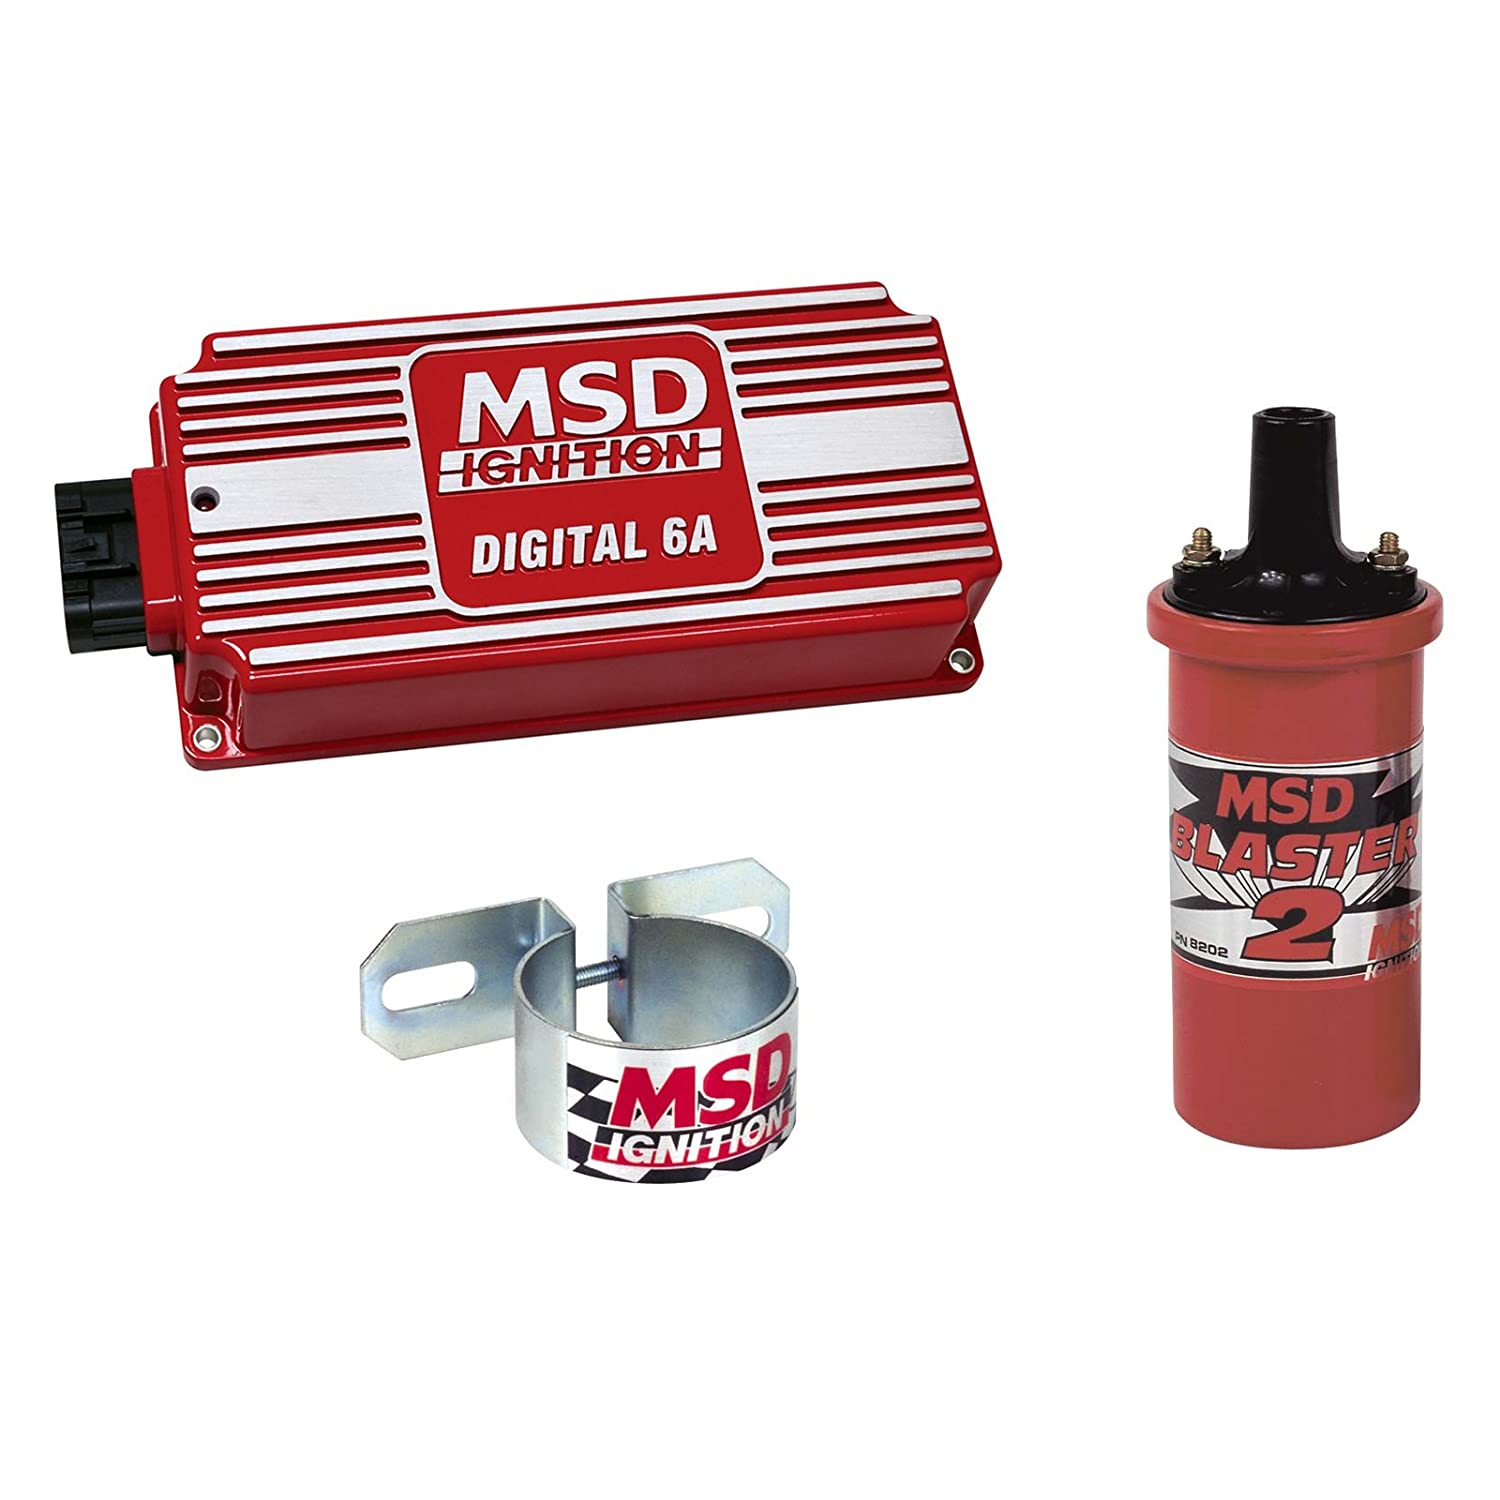 Msd 6201 K Ignition Kit Digital 6a Box Blaster 2 Coil Ford 460 Distributor To 6al Wiring Universal Bracket Automotive